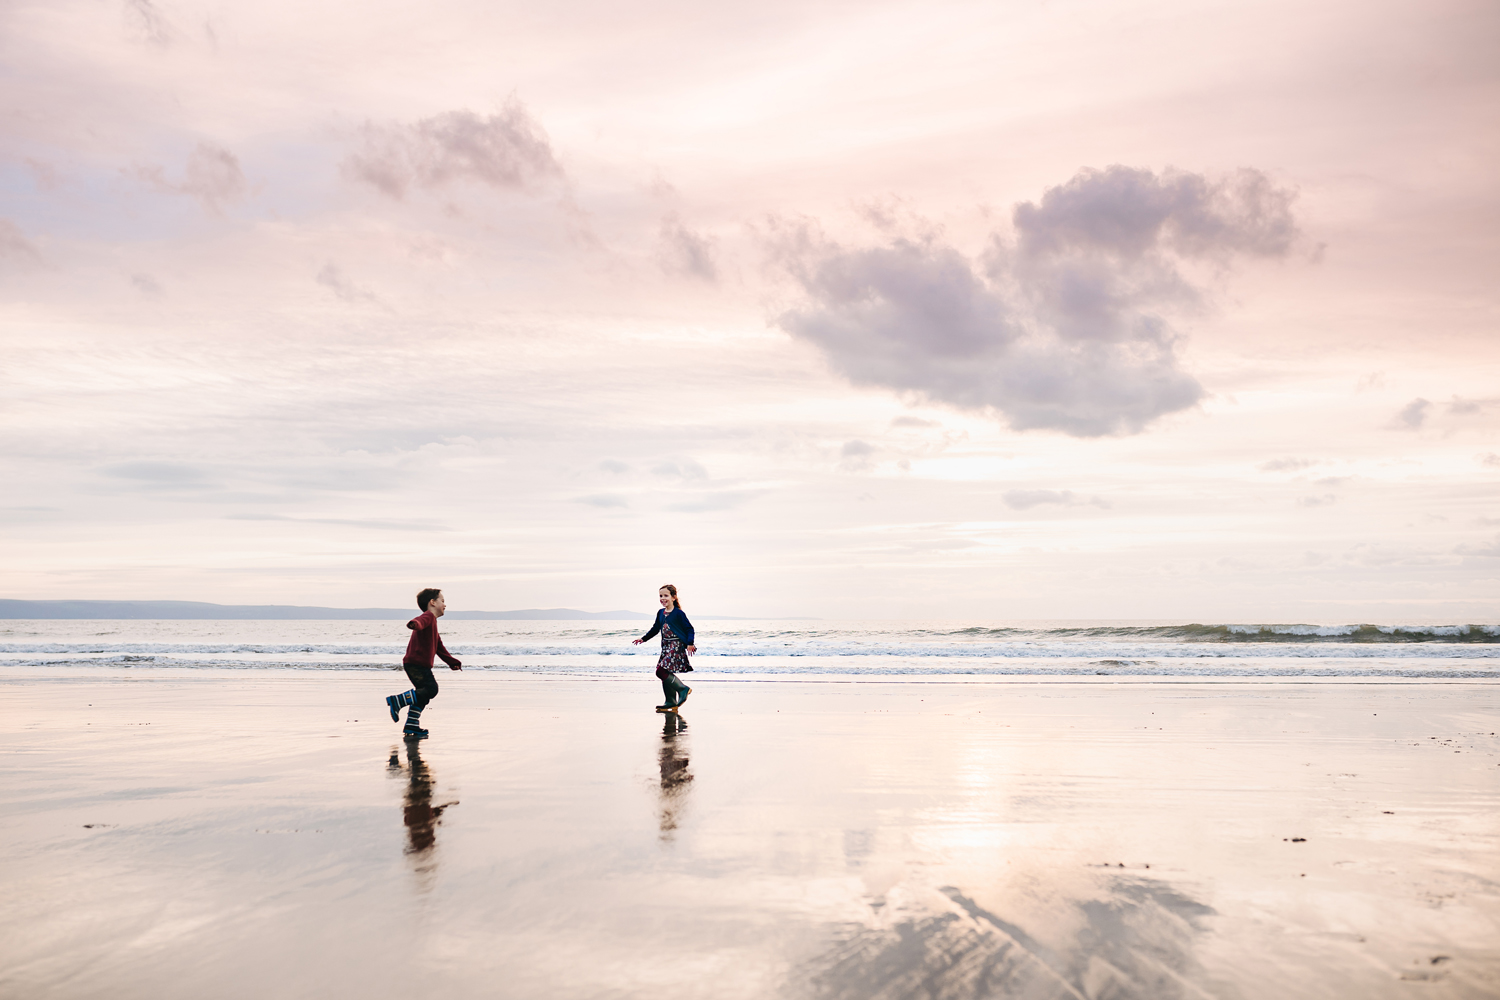 children playing on a beach at sunset